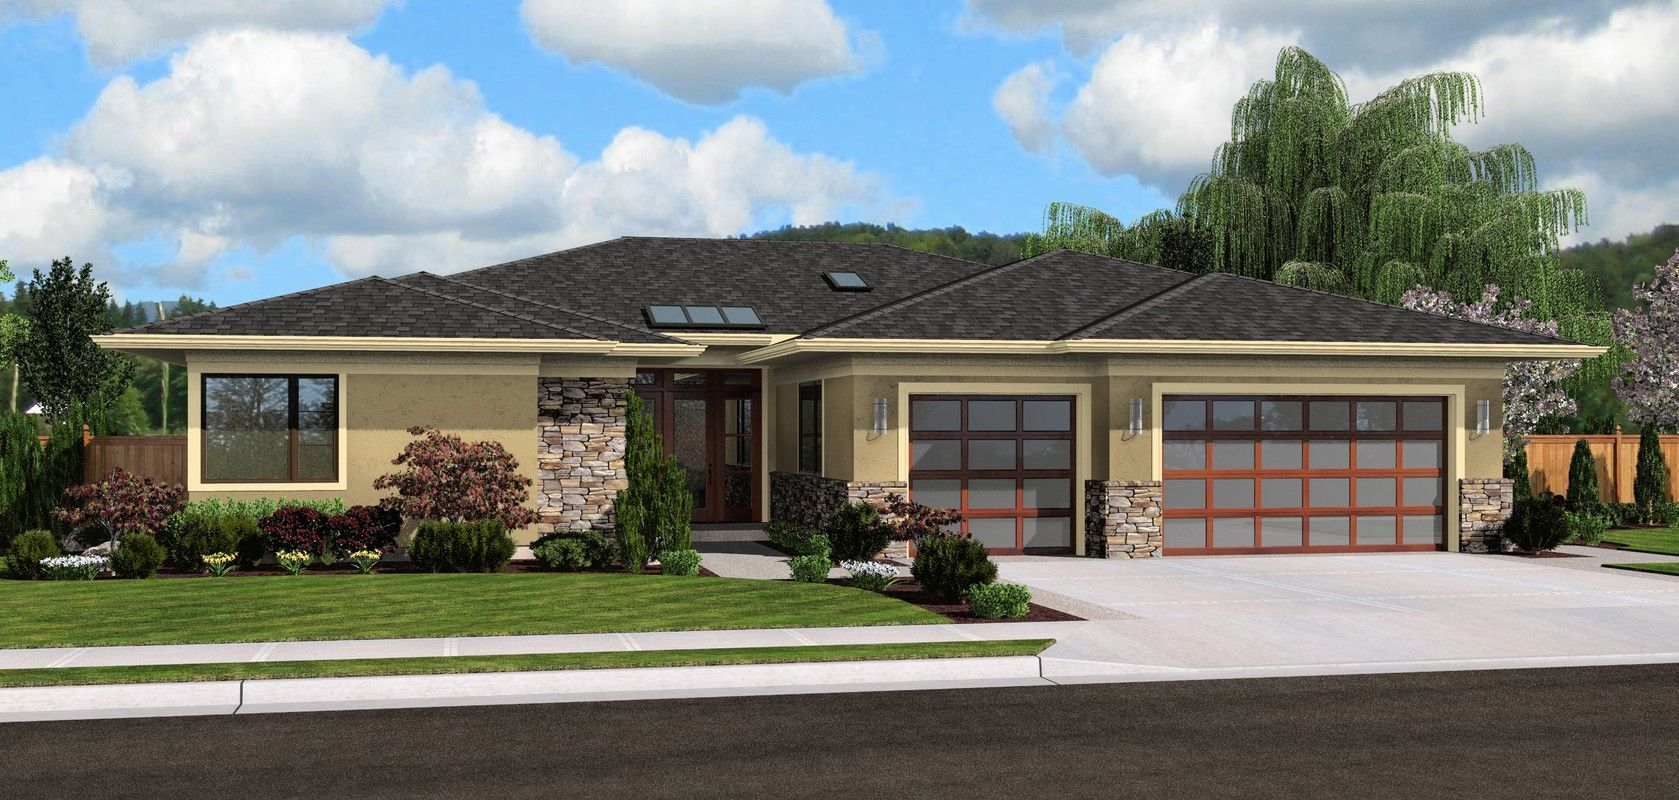 Mascord plan 1245 the riverside printed the home for Modern ranch house plans